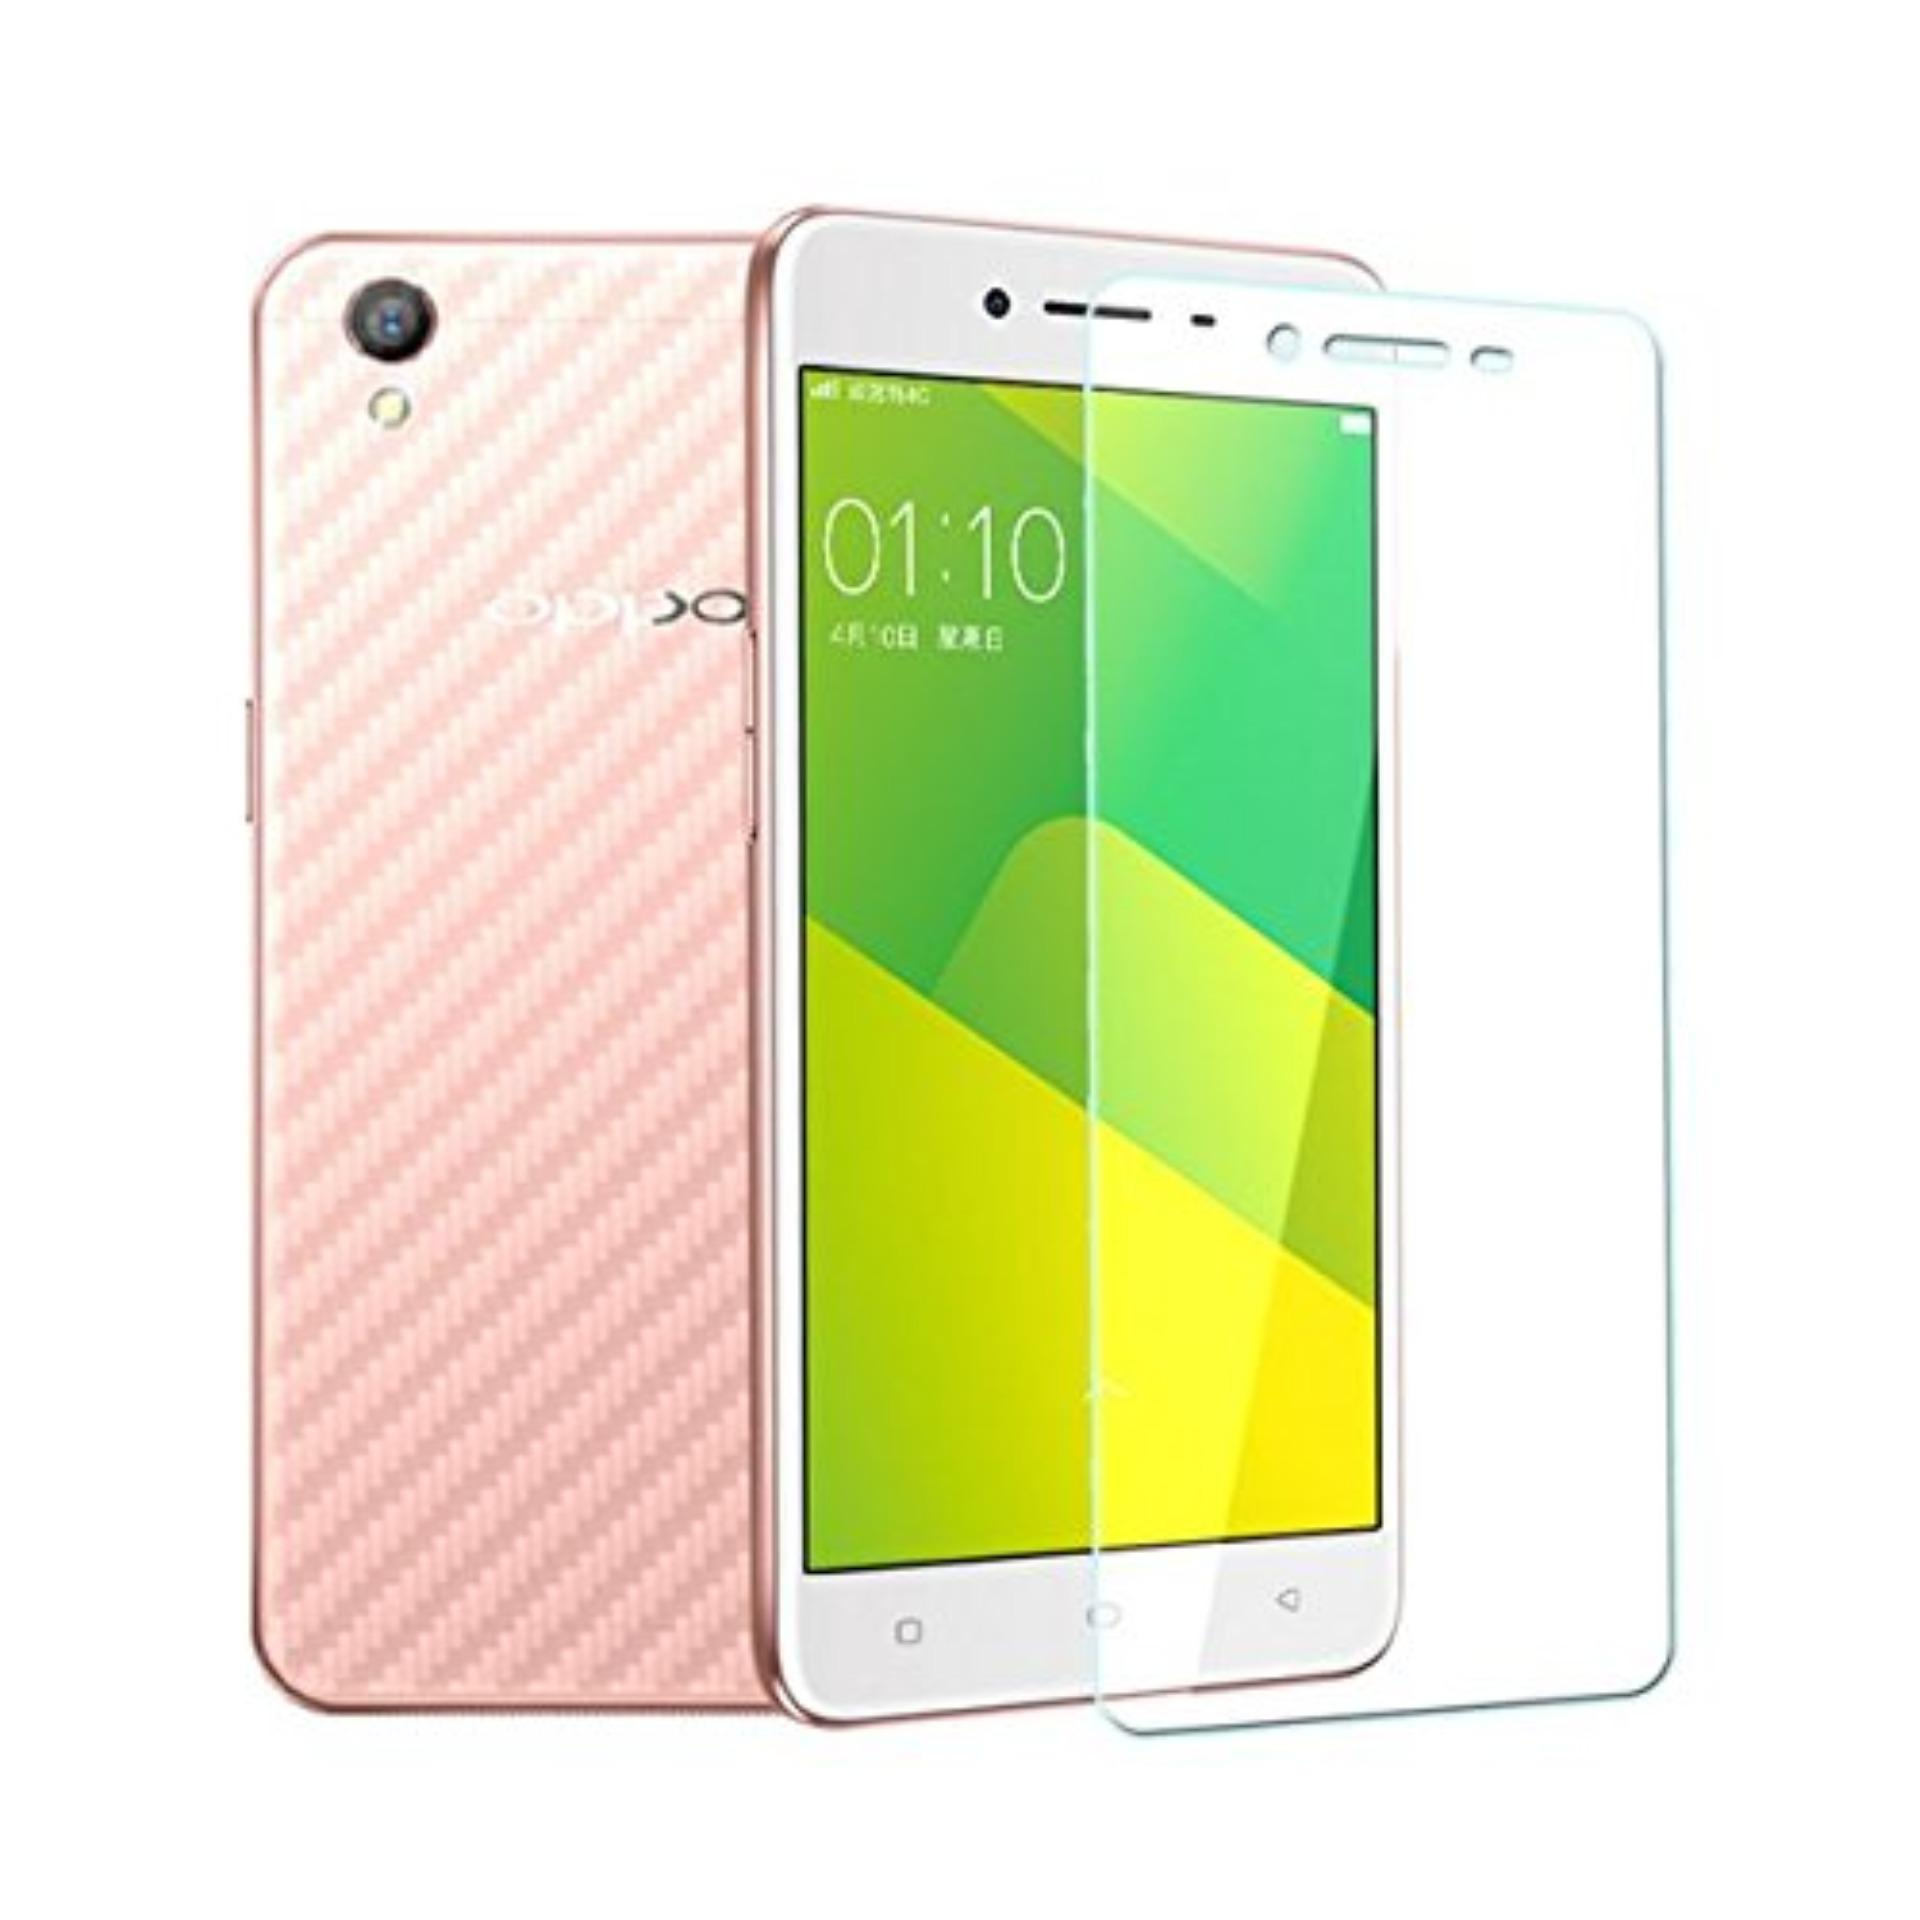 Vn Oppo A71 Tempered Glass Screen Protector 0.32mm - Anti Crash Film - Bening Transparan